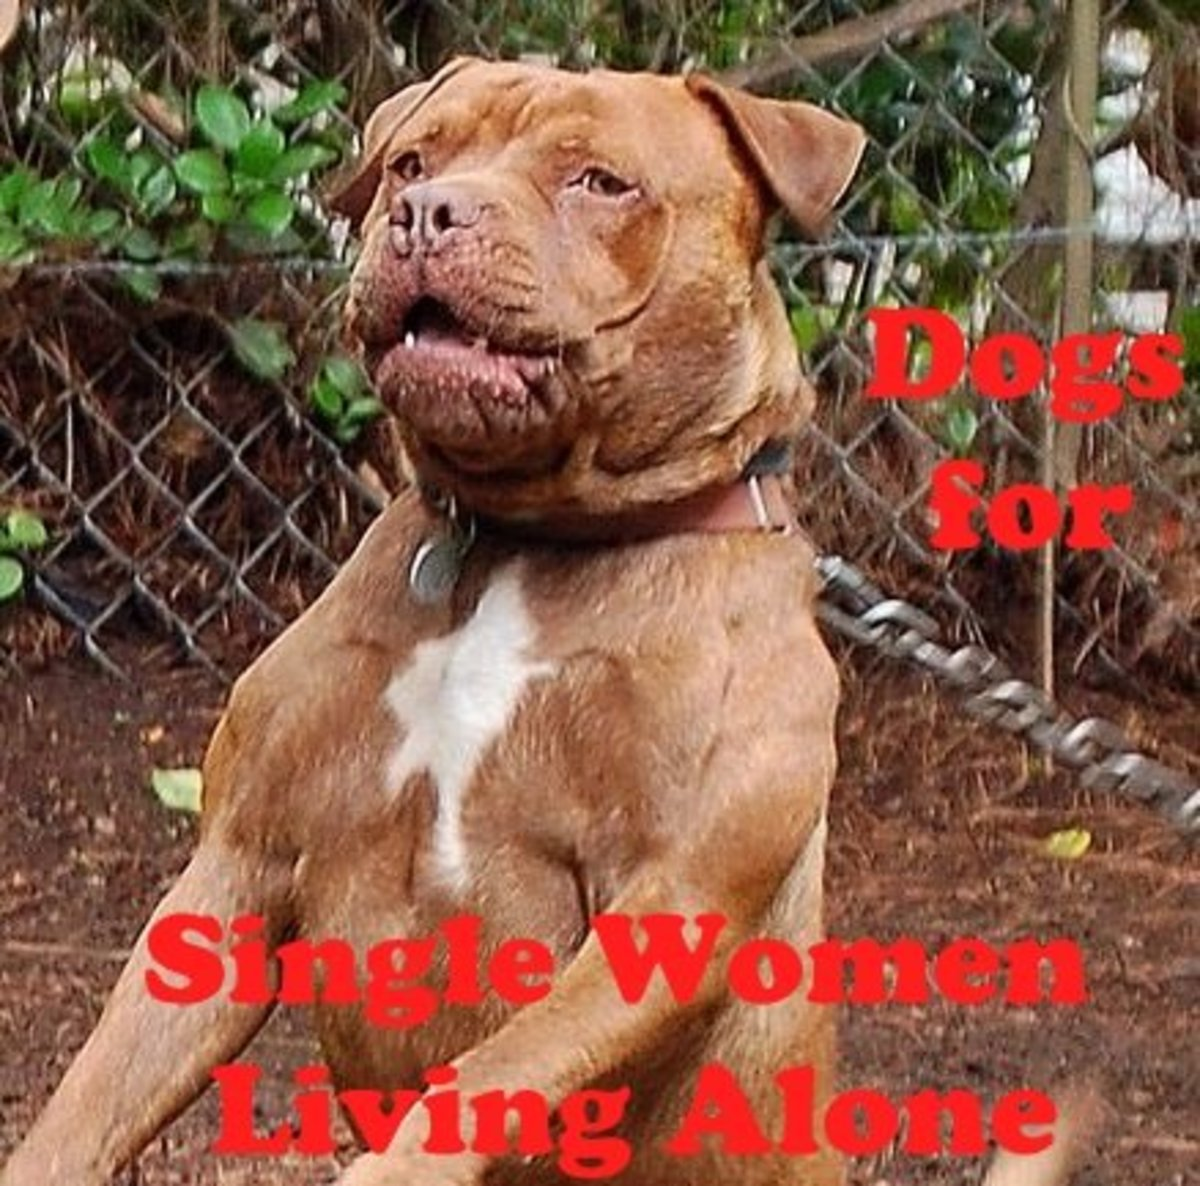 Five Best Dog Breeds for Single Women Living Alone